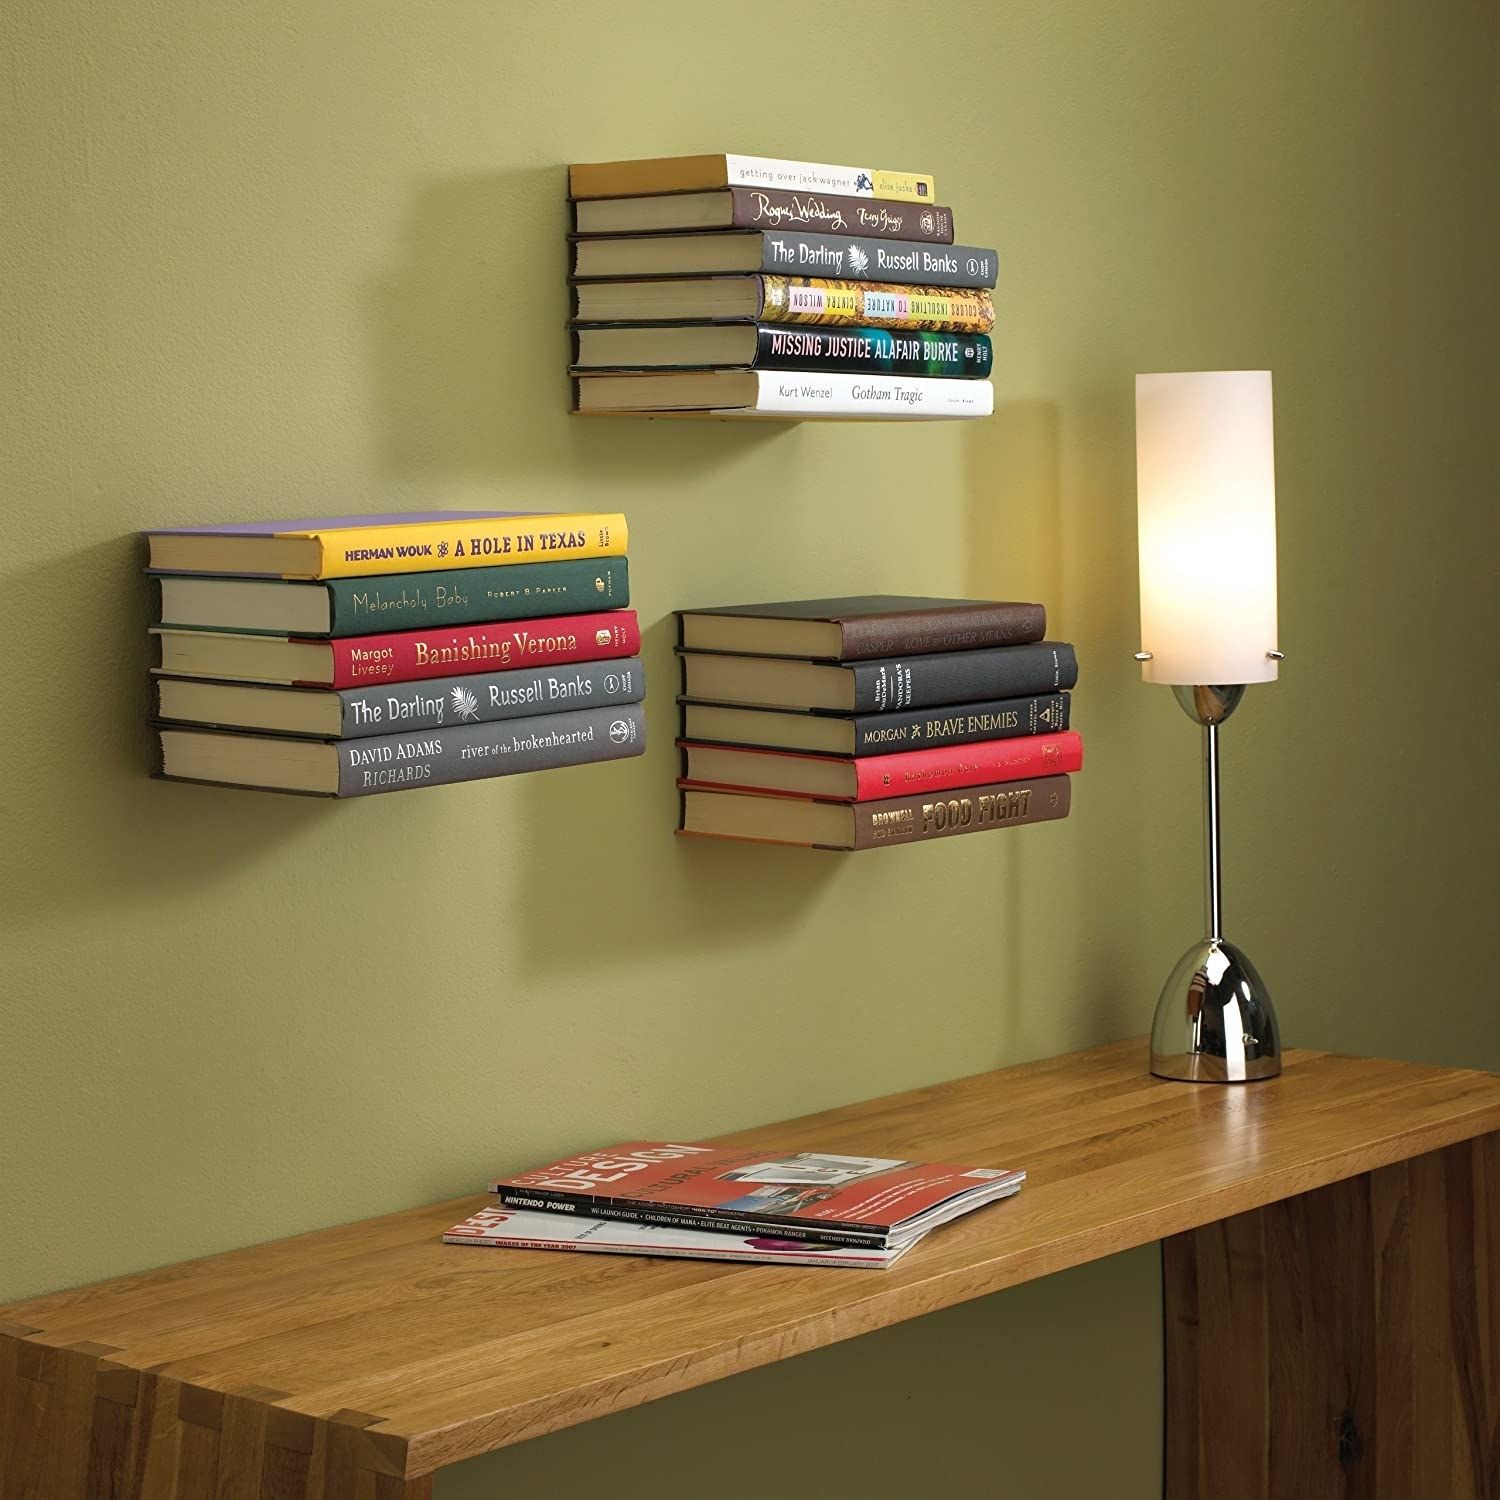 Three of the shelves on a wall